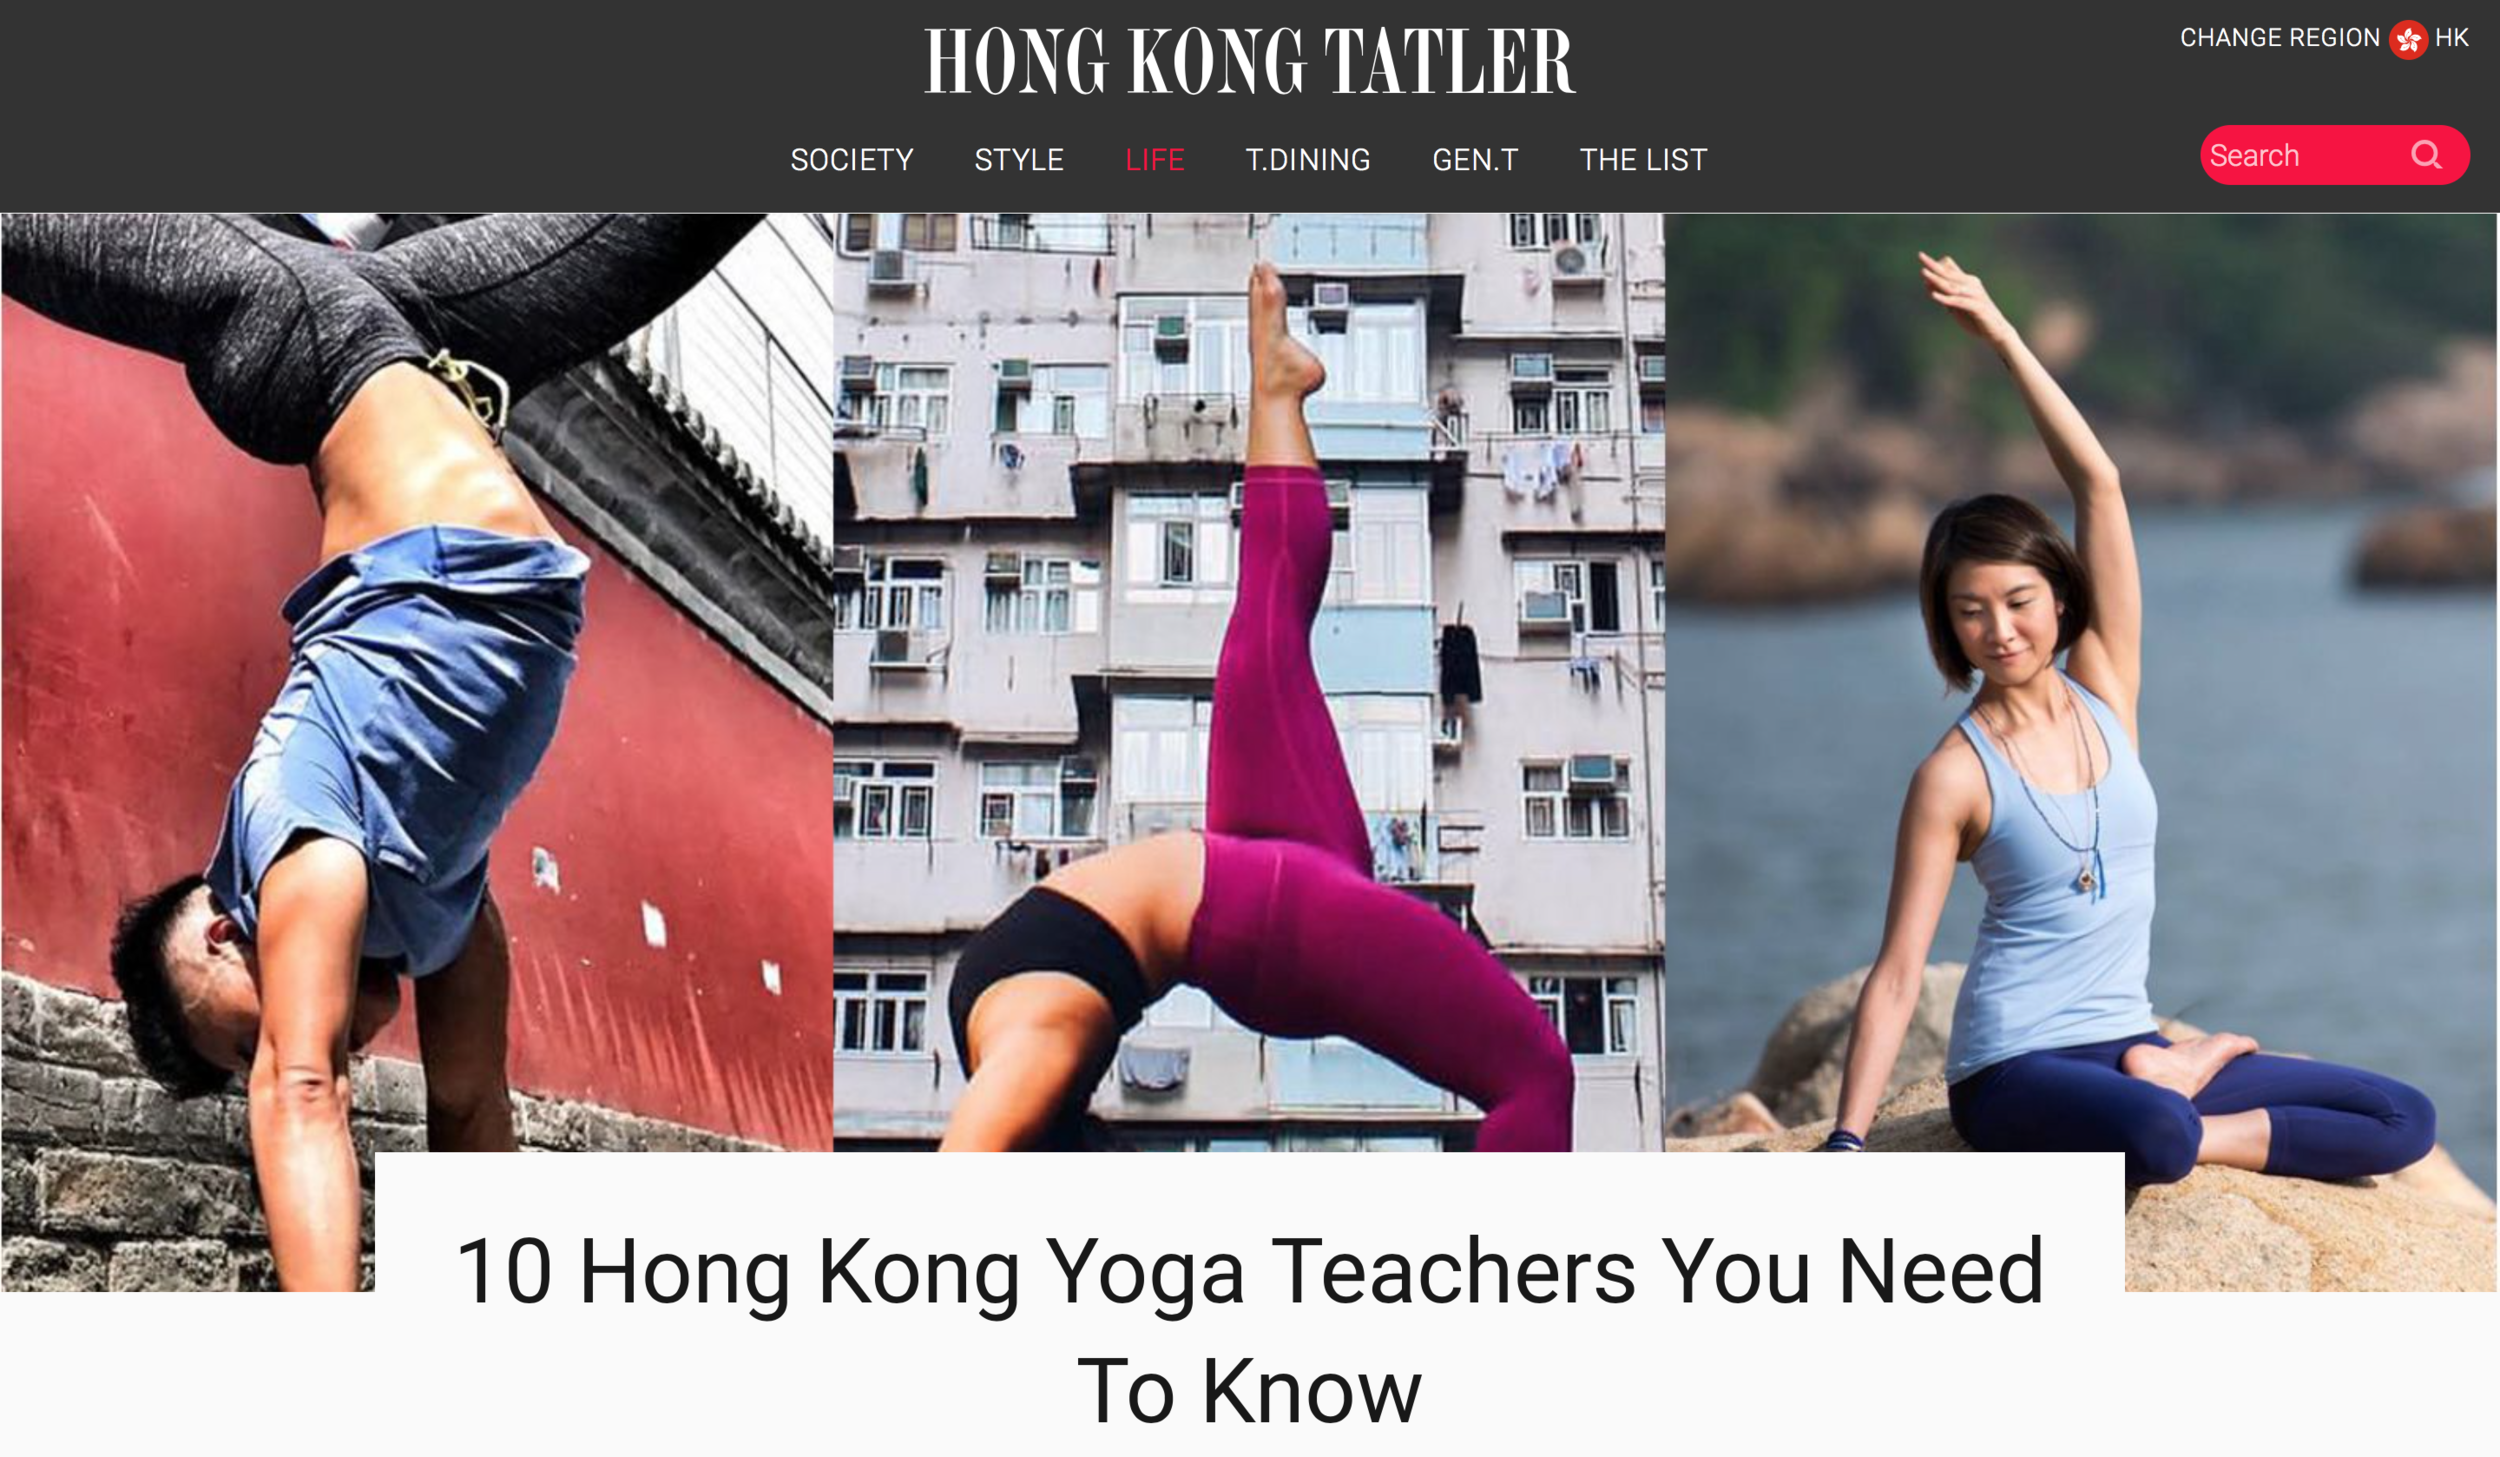 10 Hong Kong Yoga Teachers You Need To Know - Hong Kong Tatler